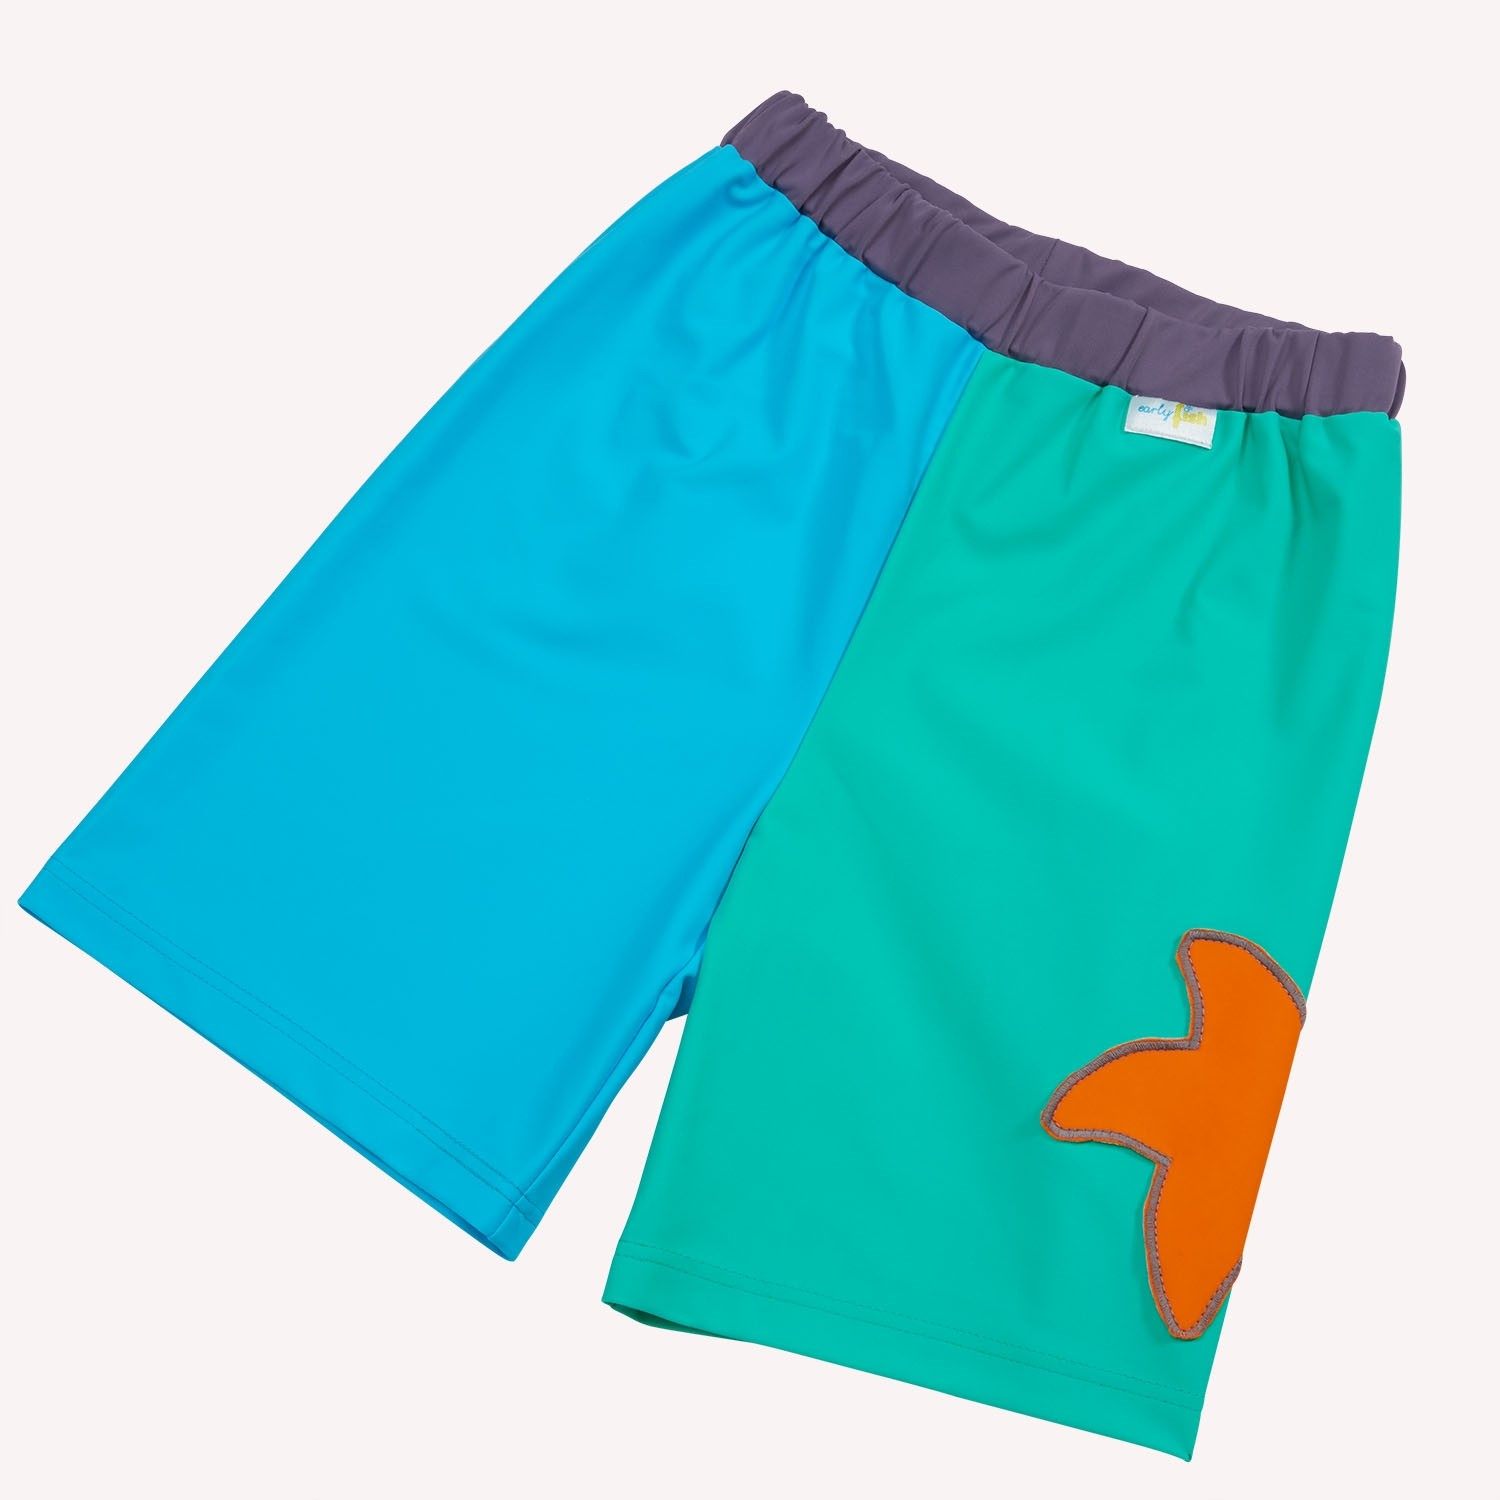 UV protection Bathing Trunks Starfish - Eco Beach Fashion